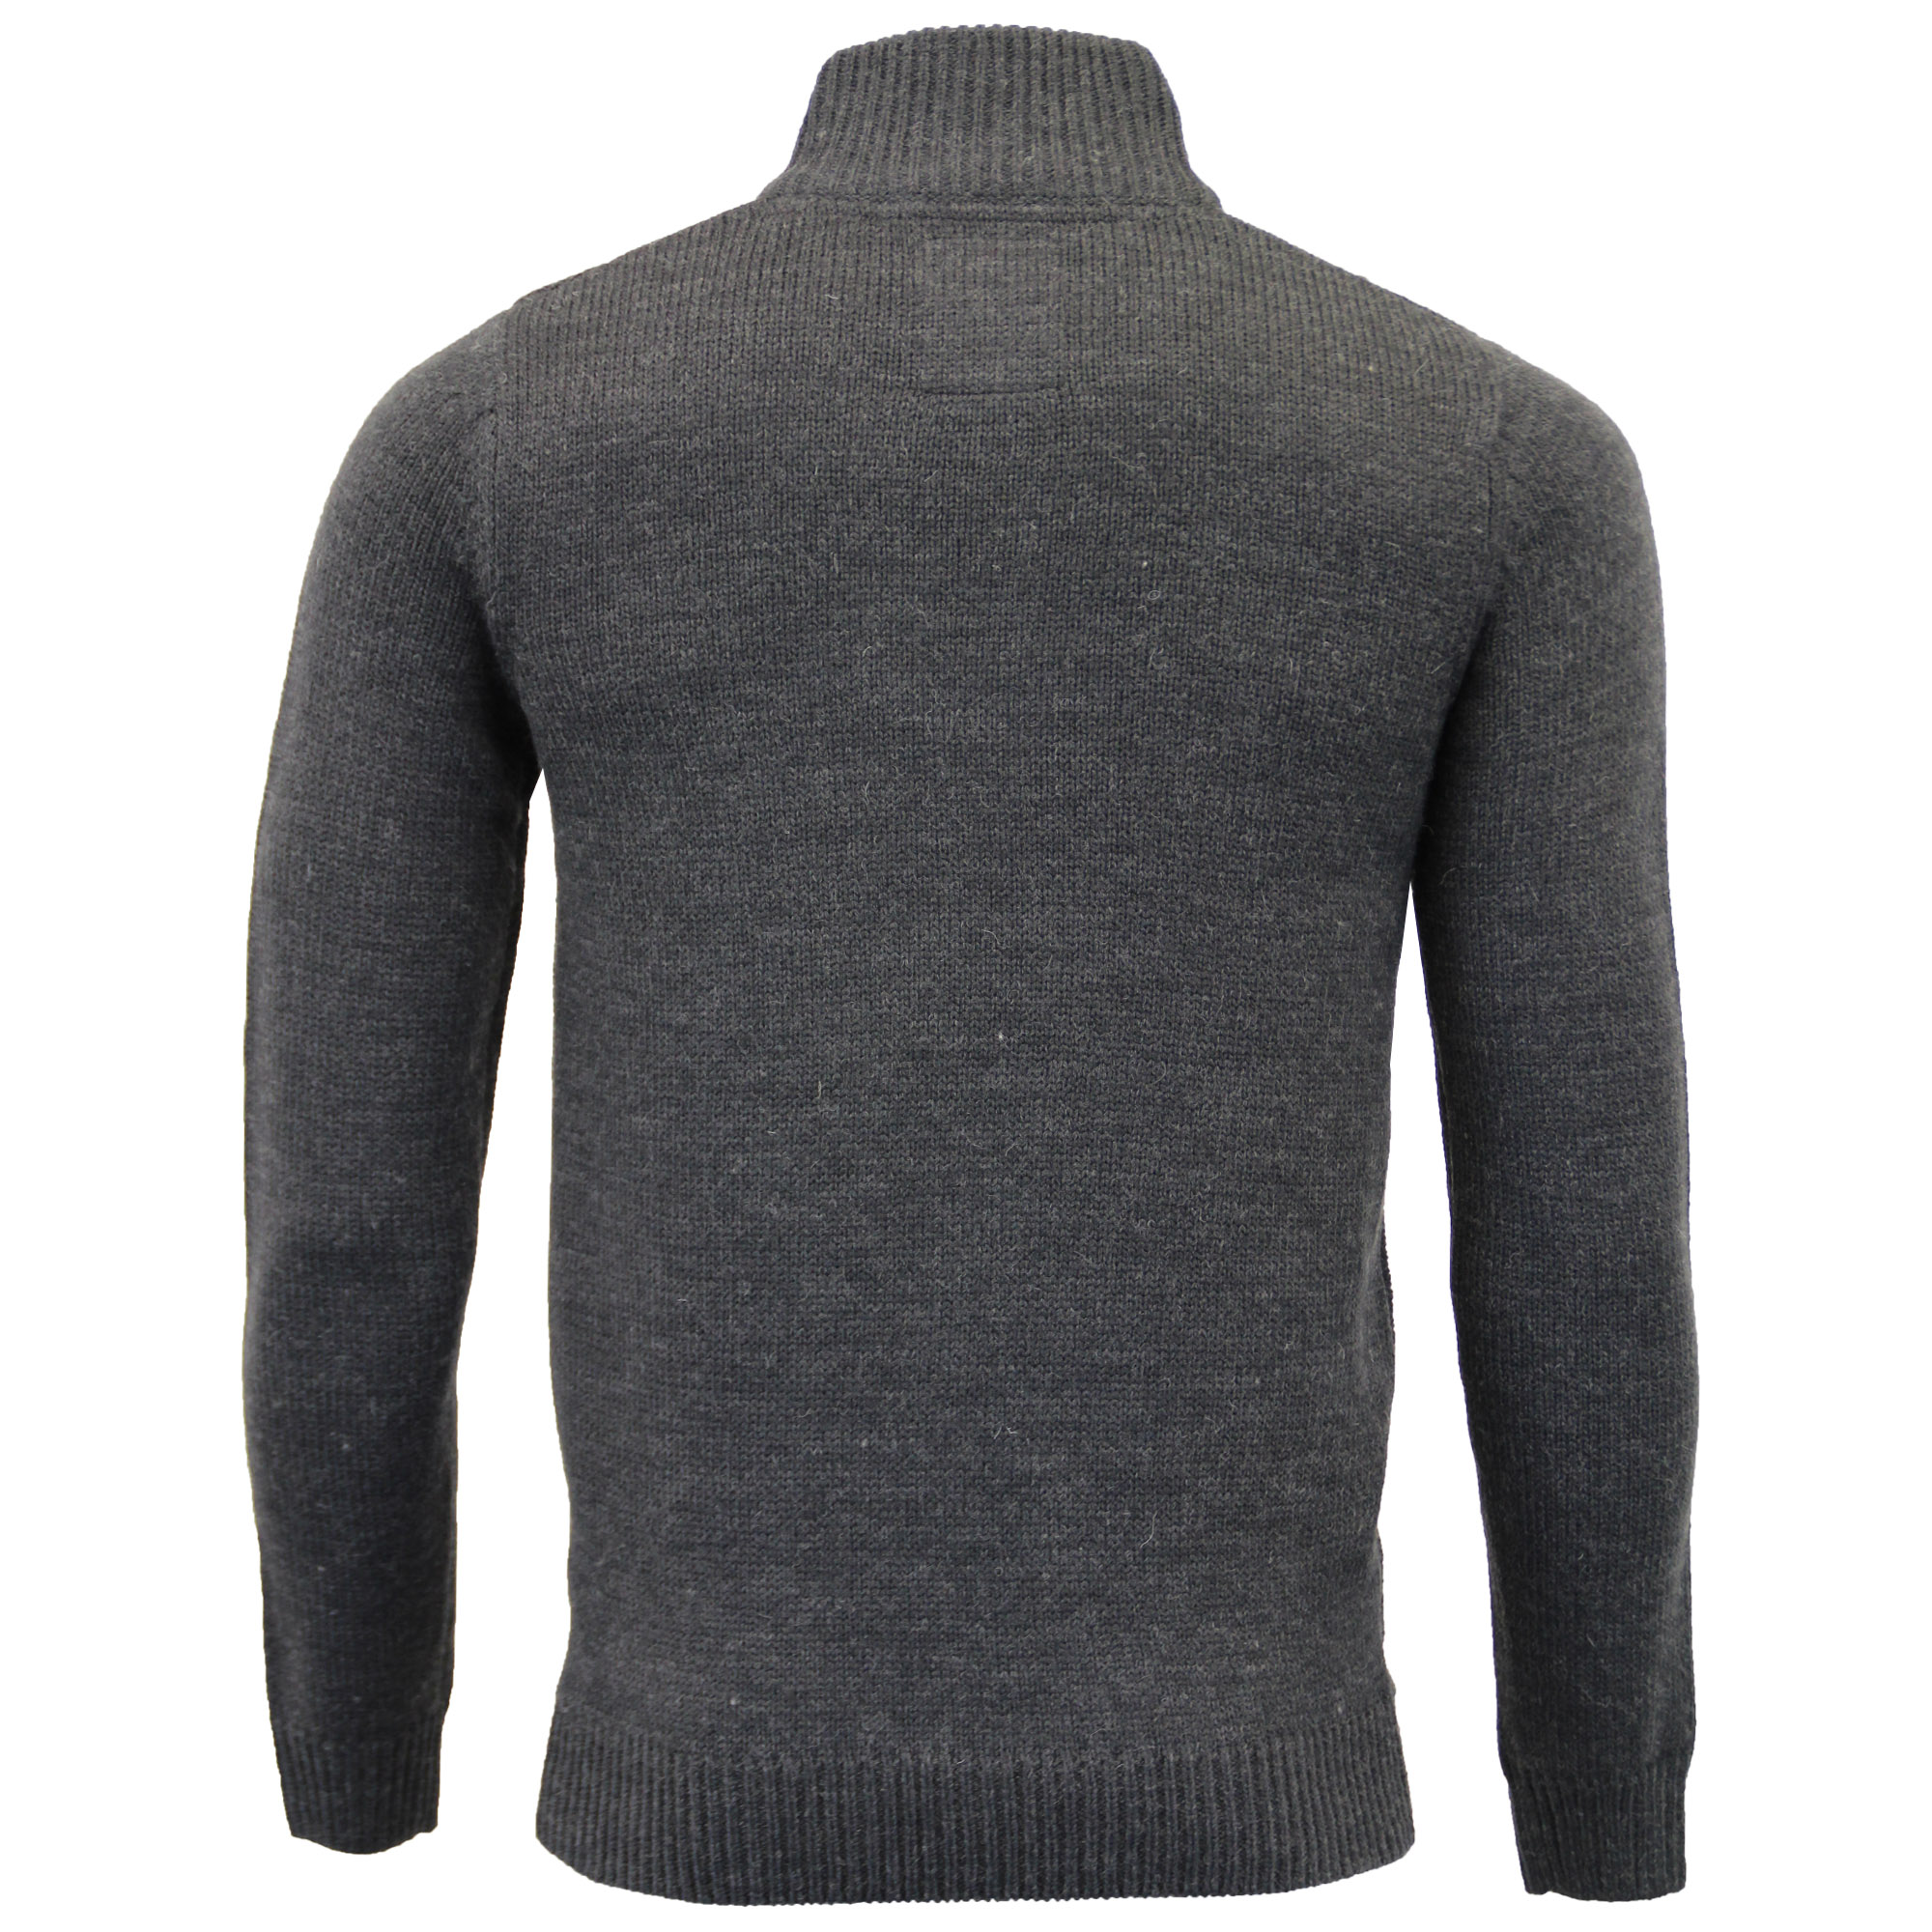 Mens-Wool-Mix-Jumper-Threadbare-Knitted-Sweater-Pullover-Top-Chunky-Zip-Winter thumbnail 3